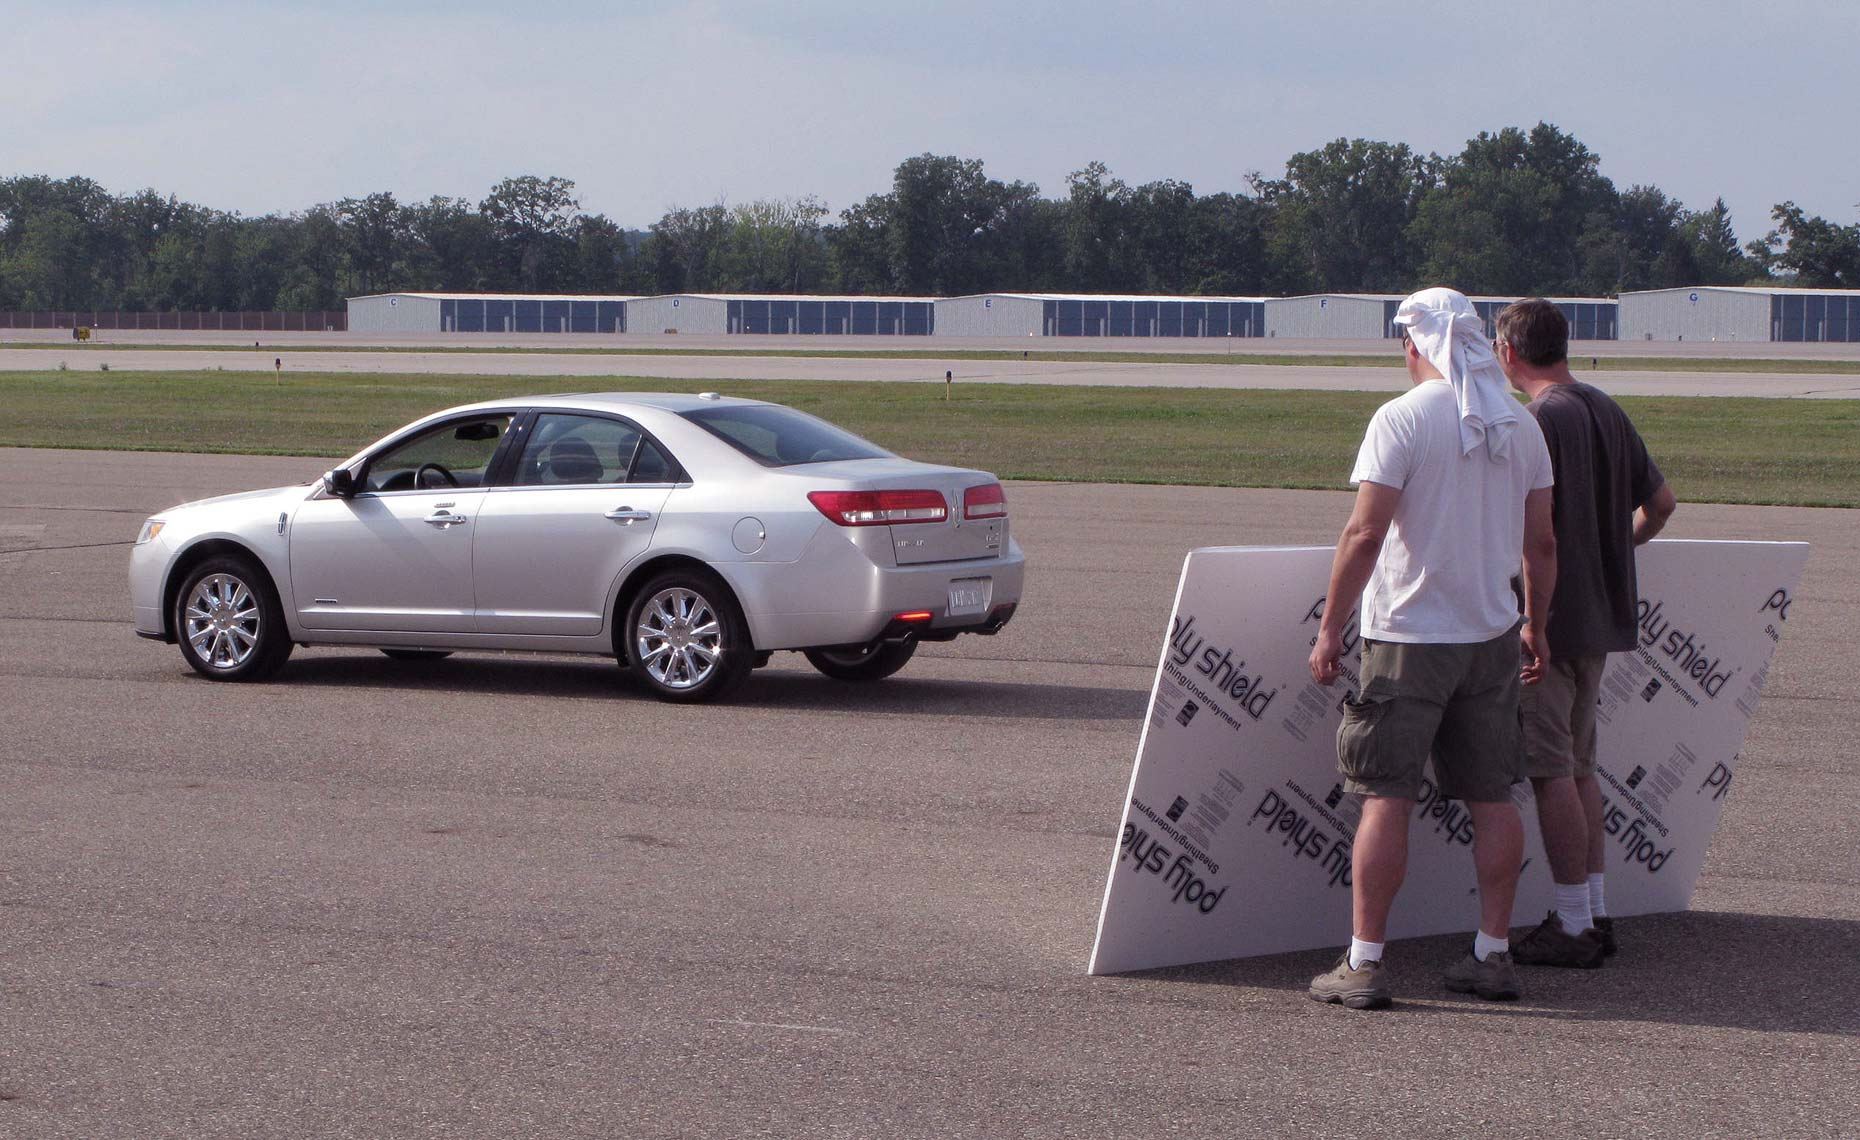 2013 lincoln mkz-behind the scenes-airport-2.jpg